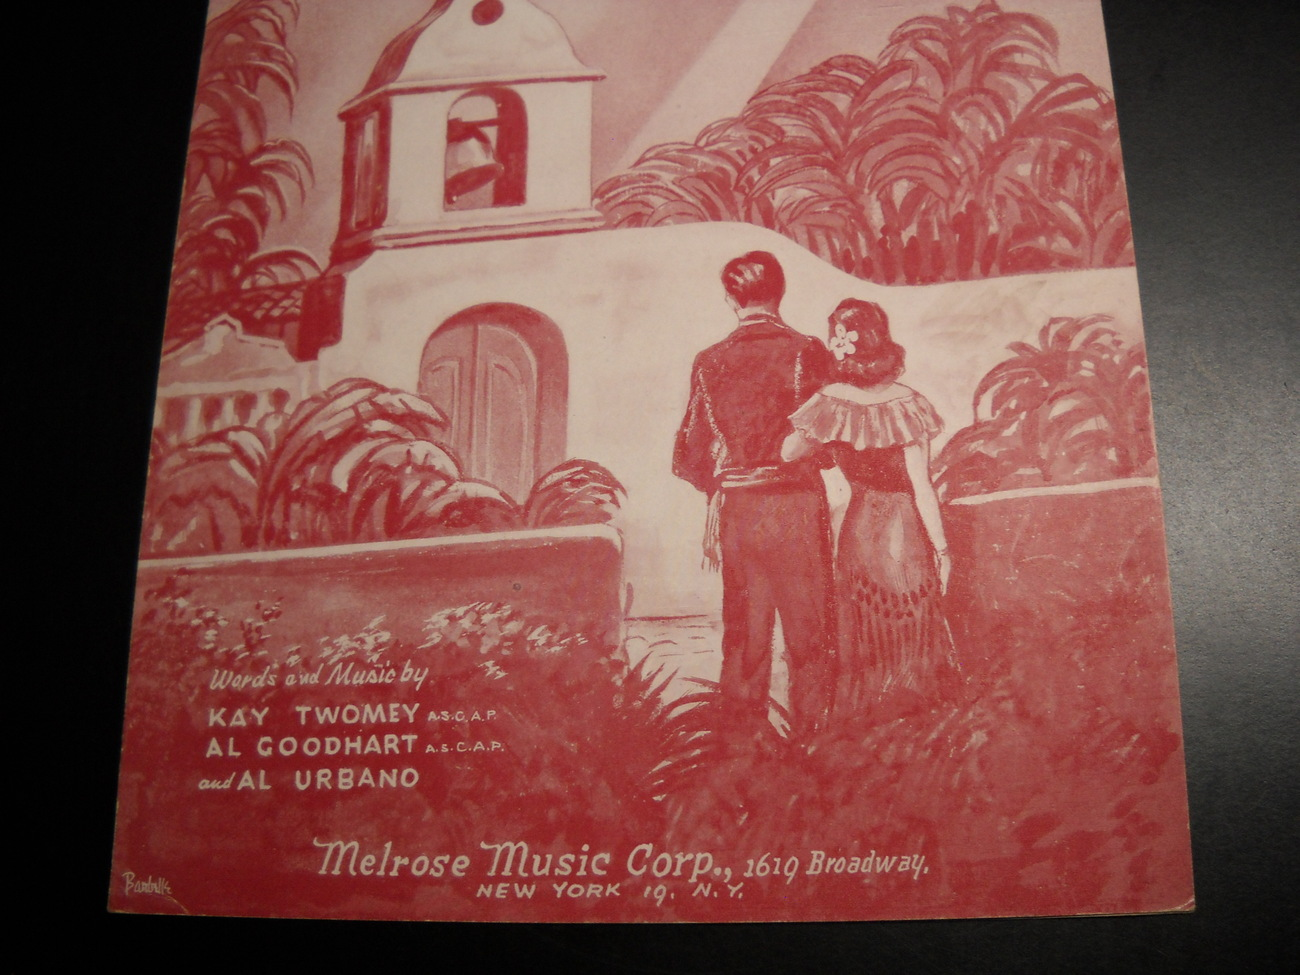 Sheet_music_serenade_of_the_bells_twomey_goodhardt_urbano_1947_melrose_03